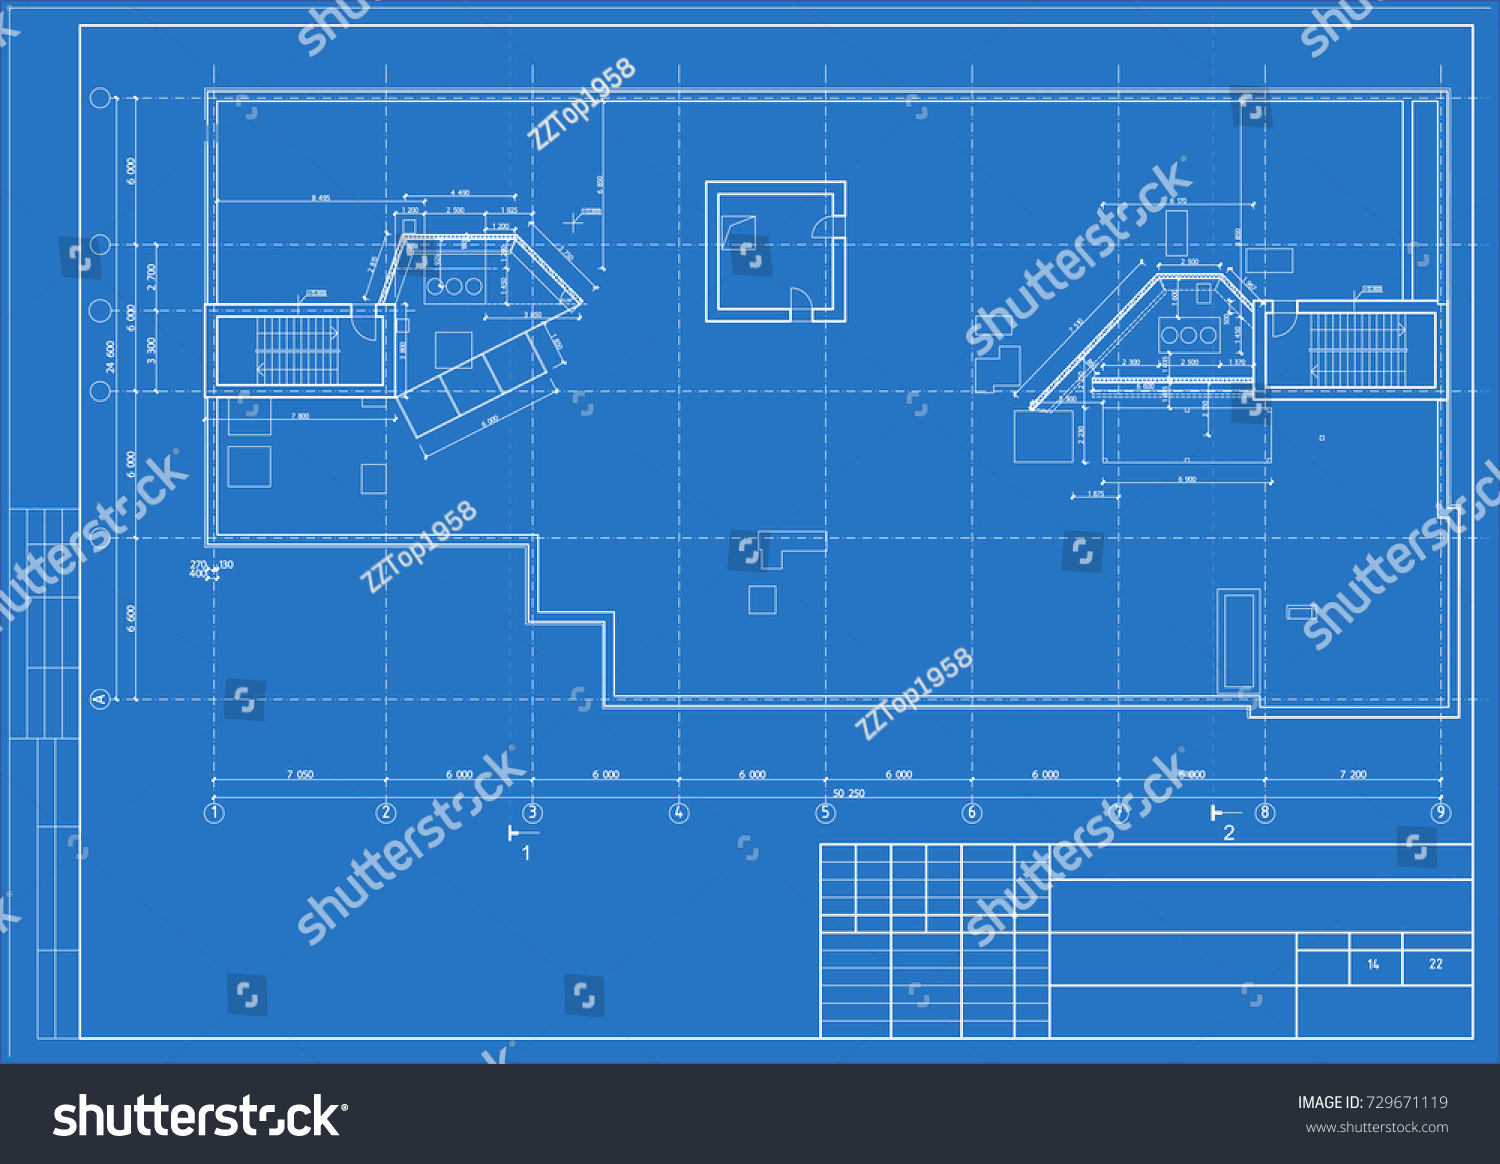 Architectural design engineering equipment floor plan vector de the architectural design of the engineering equipment floor plan blueprint vector malvernweather Image collections